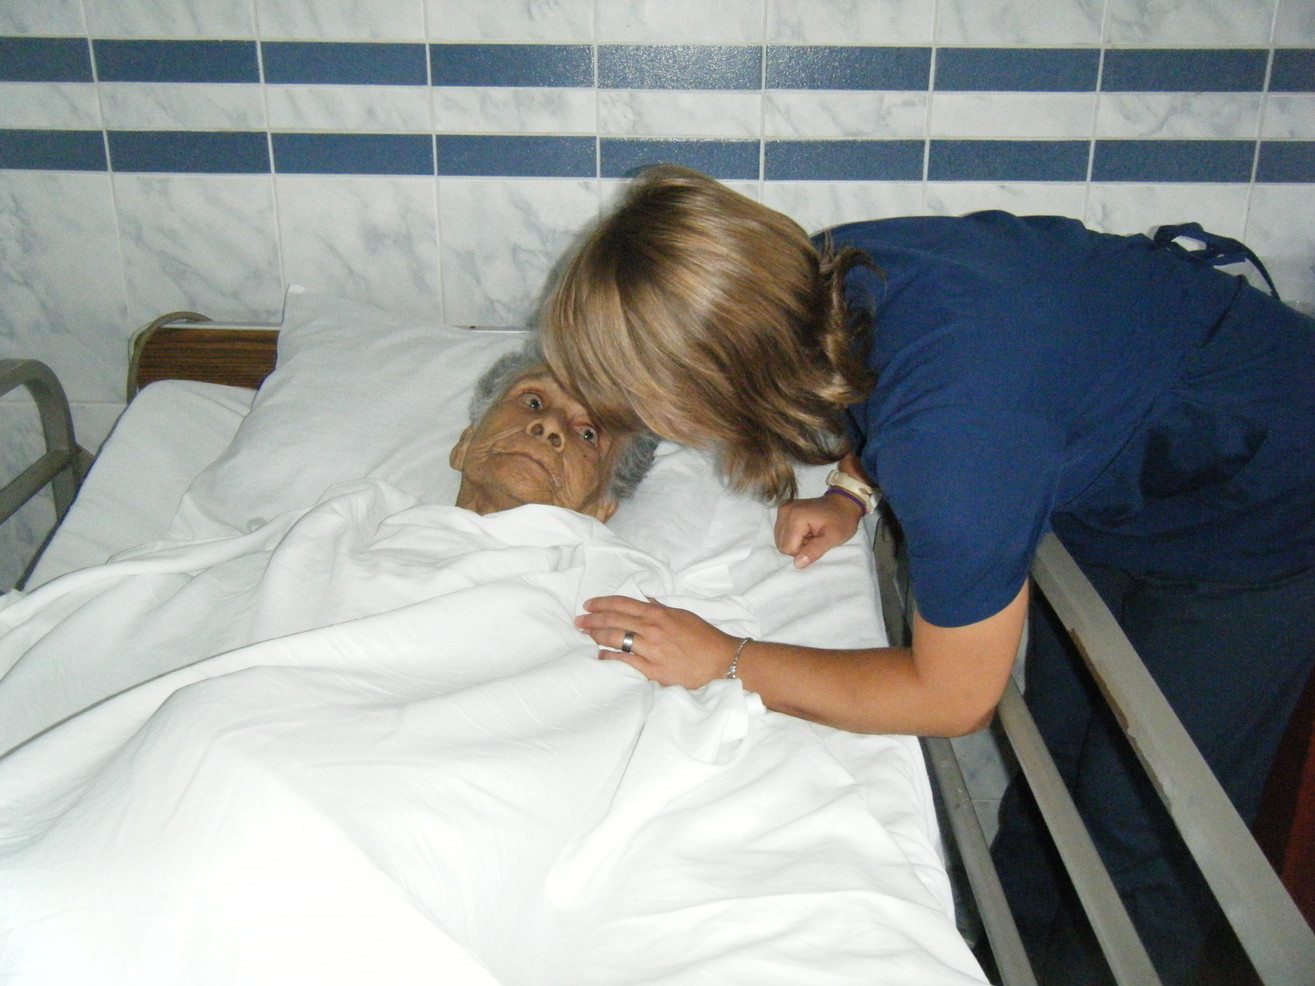 A patient is lovingly cared for at the Hospicio Santiago Apóstol in Chimbote, Peru, the first-known hospice in South America.